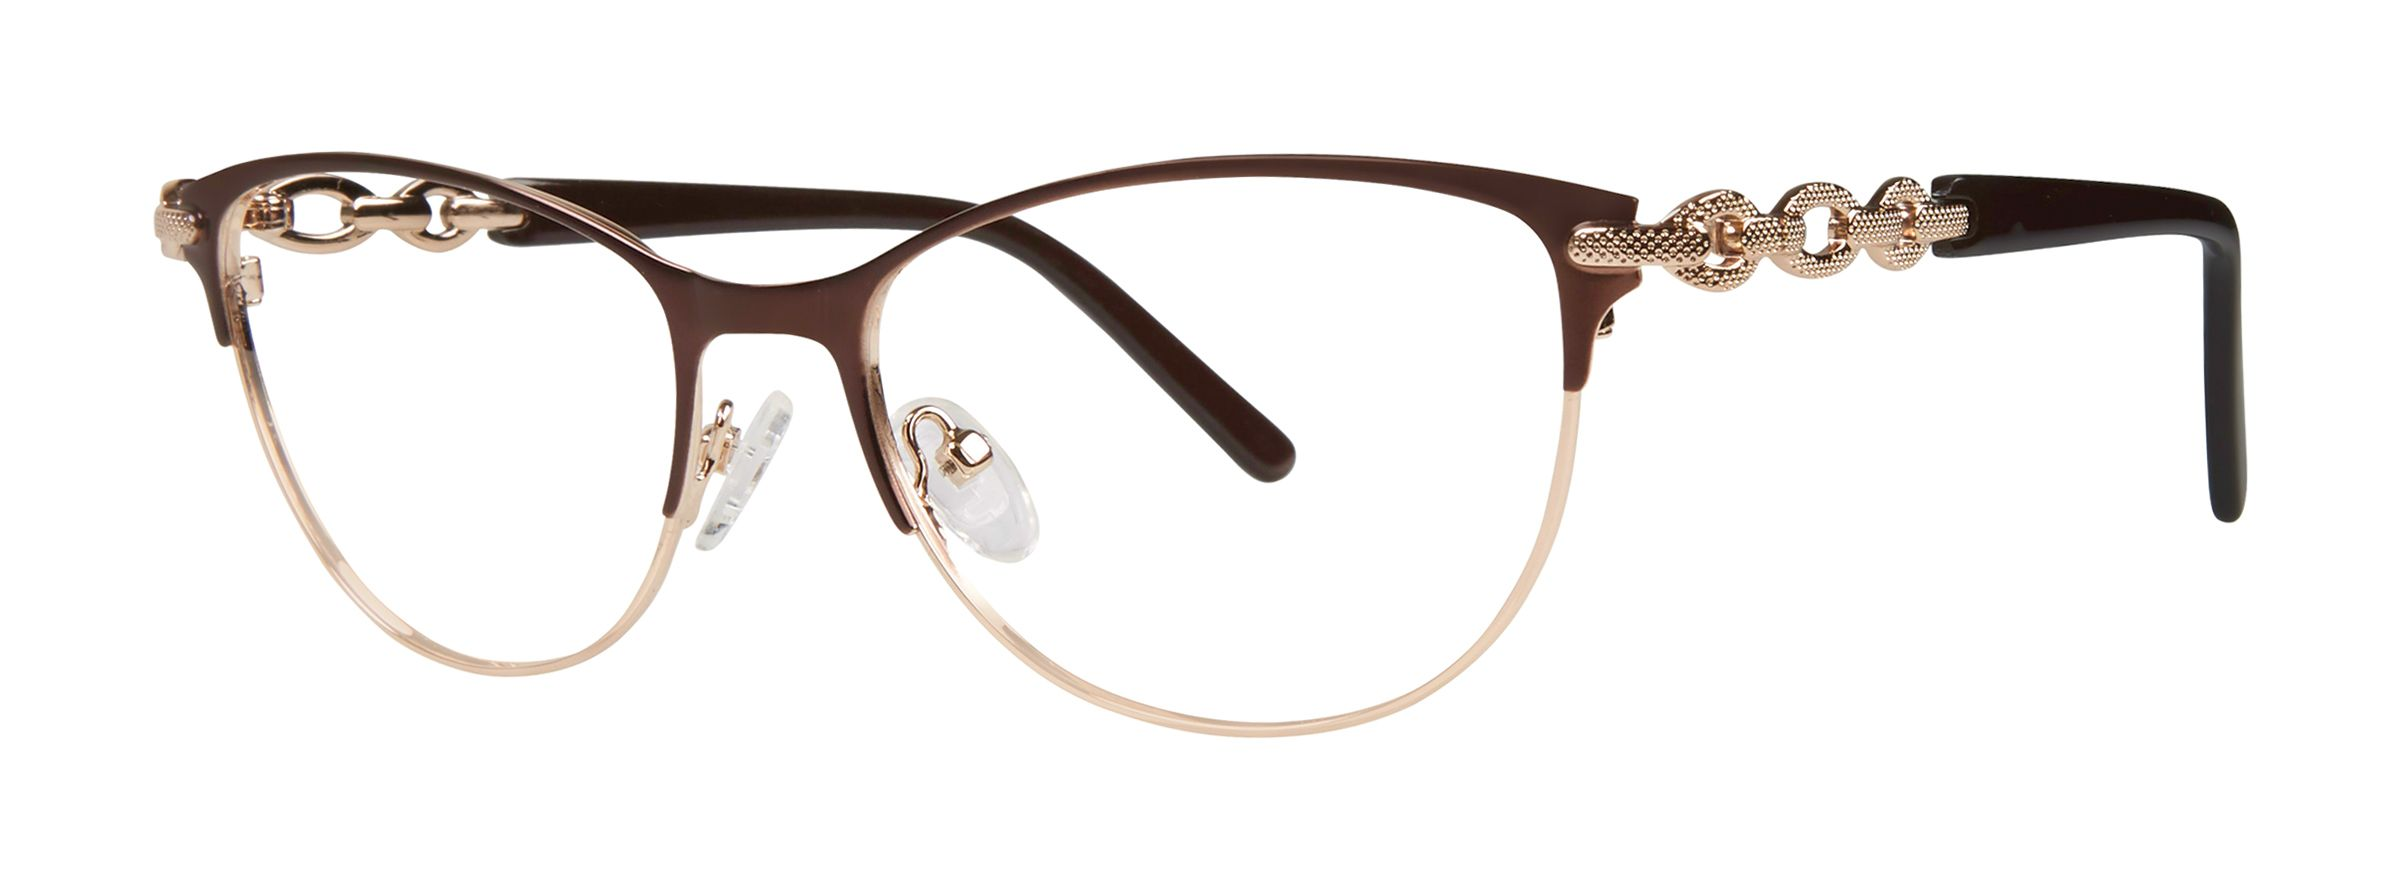 Captivate by GB+ Eyewear Collection. Beautiful, affordable eyeglass ...